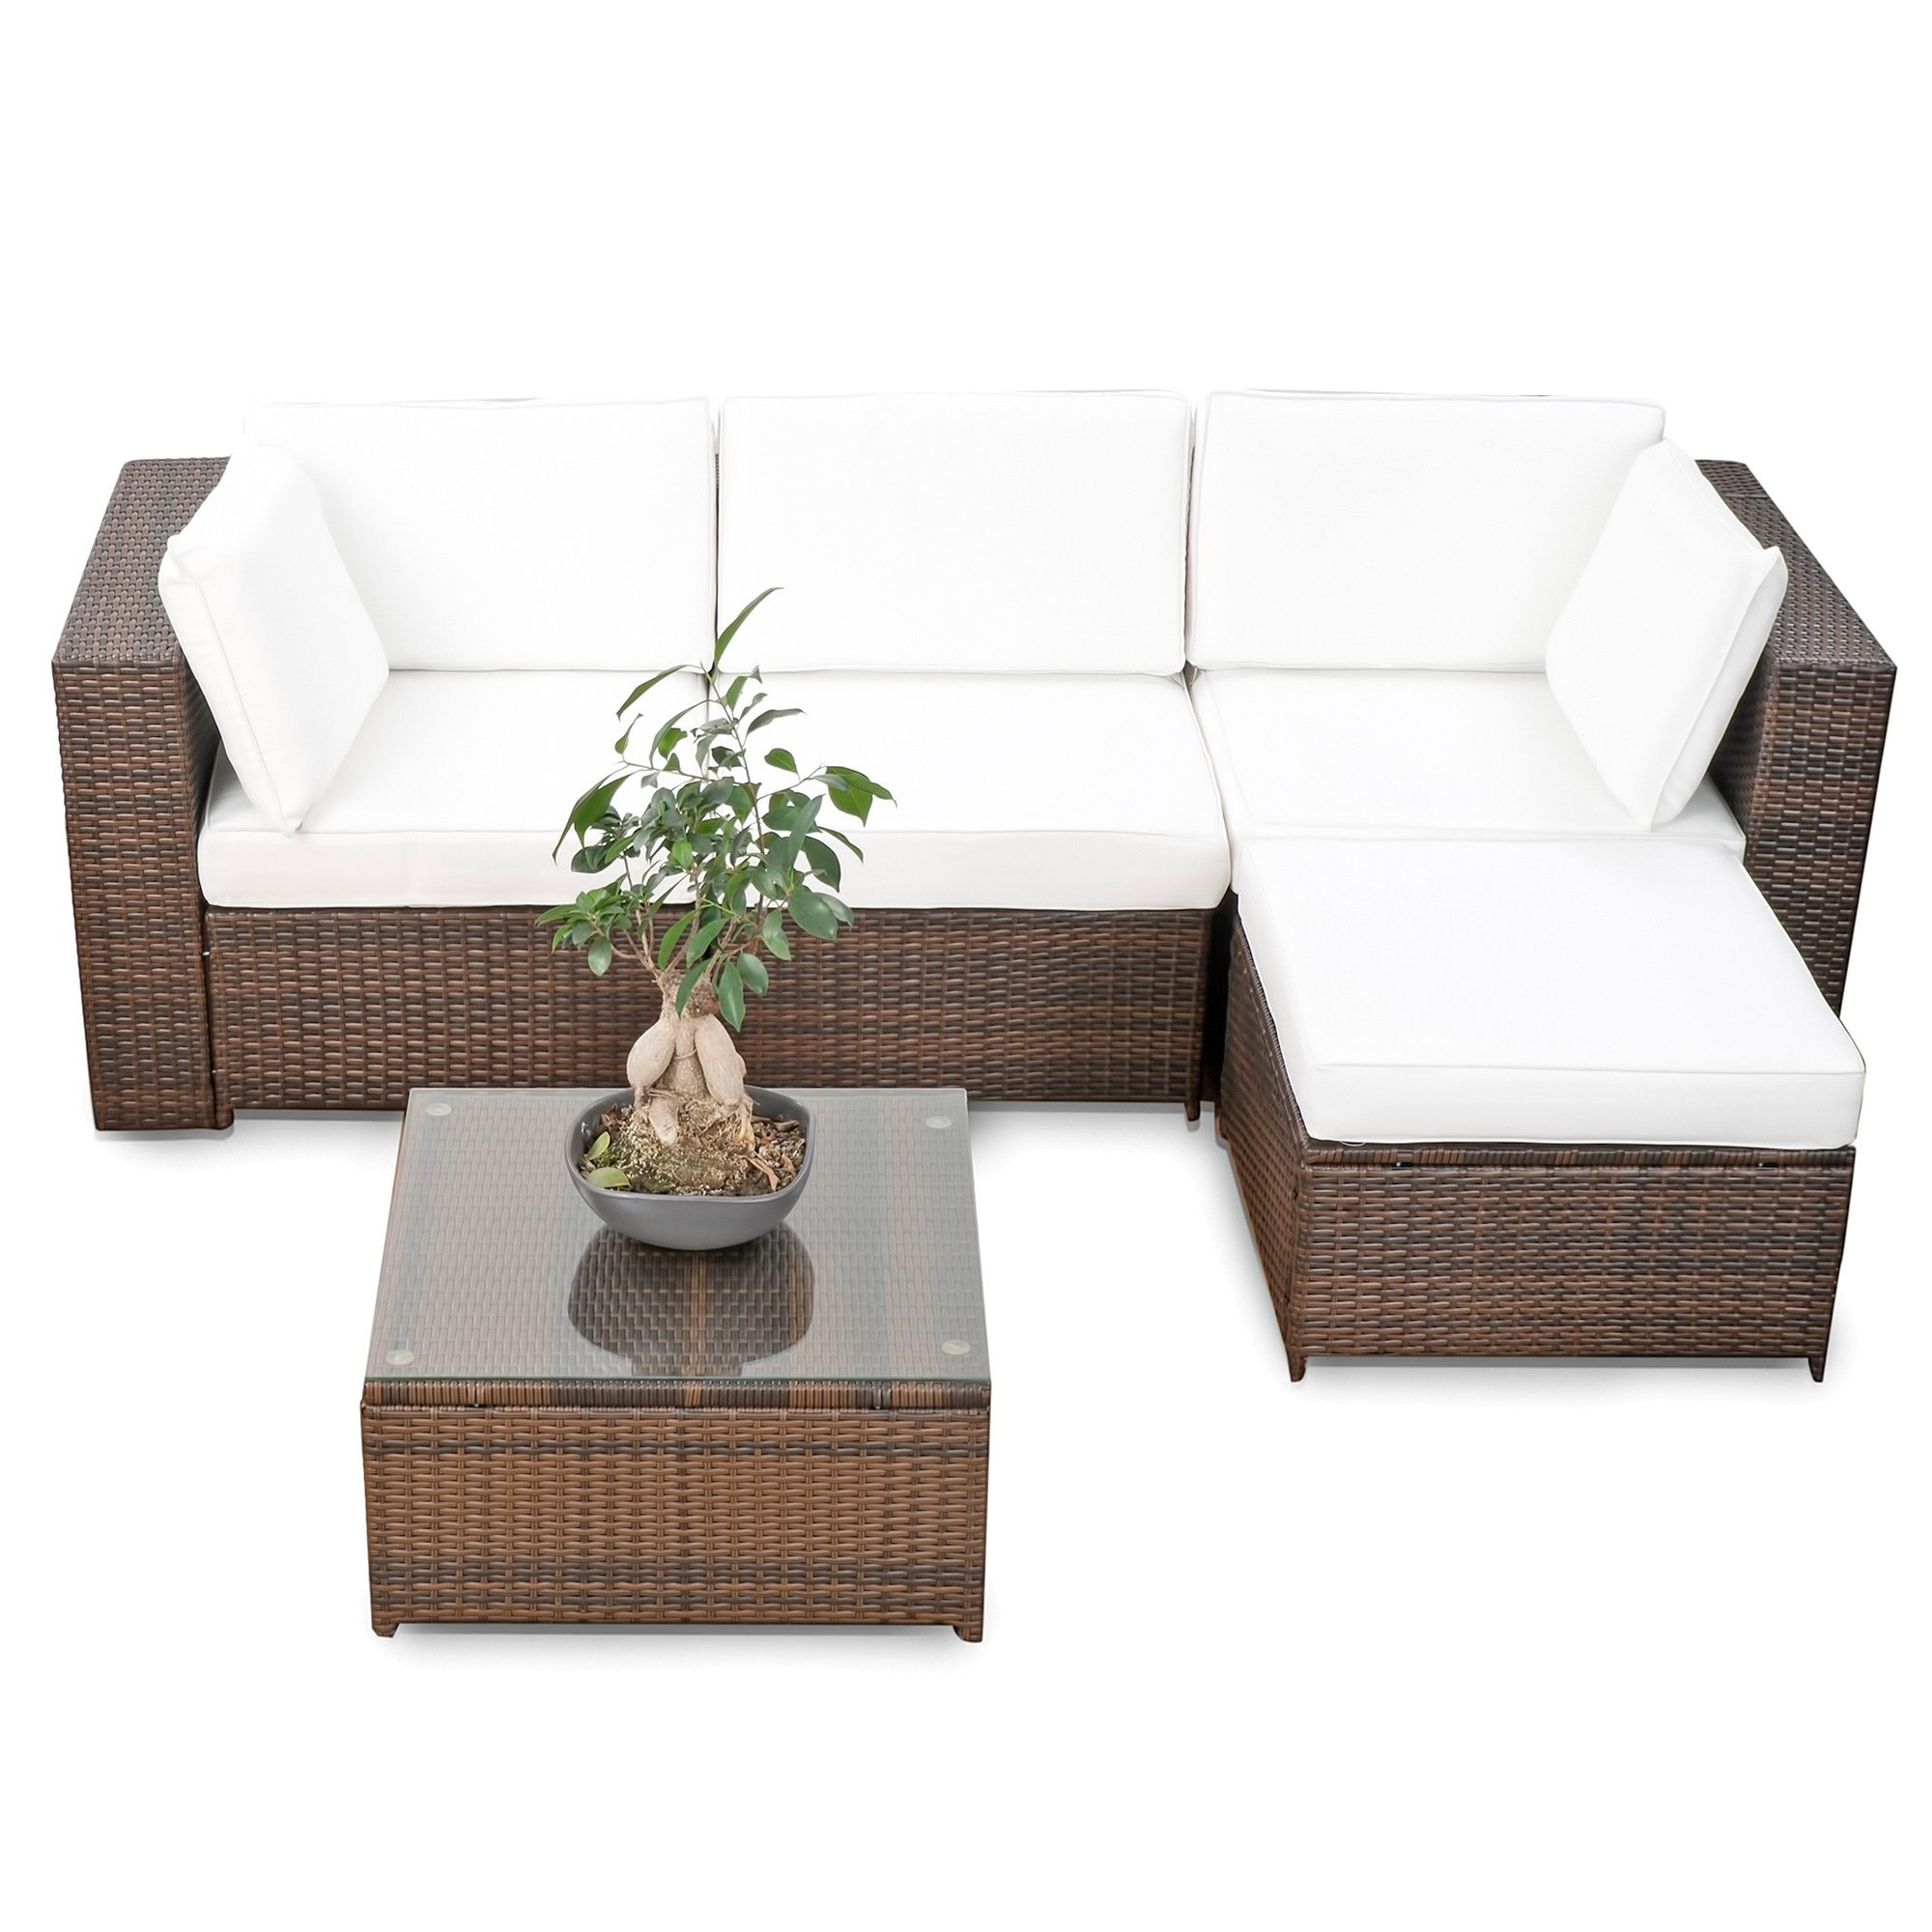 Balkon lounge set g nstig lounge set balkon kaufen for Balkon lounge set